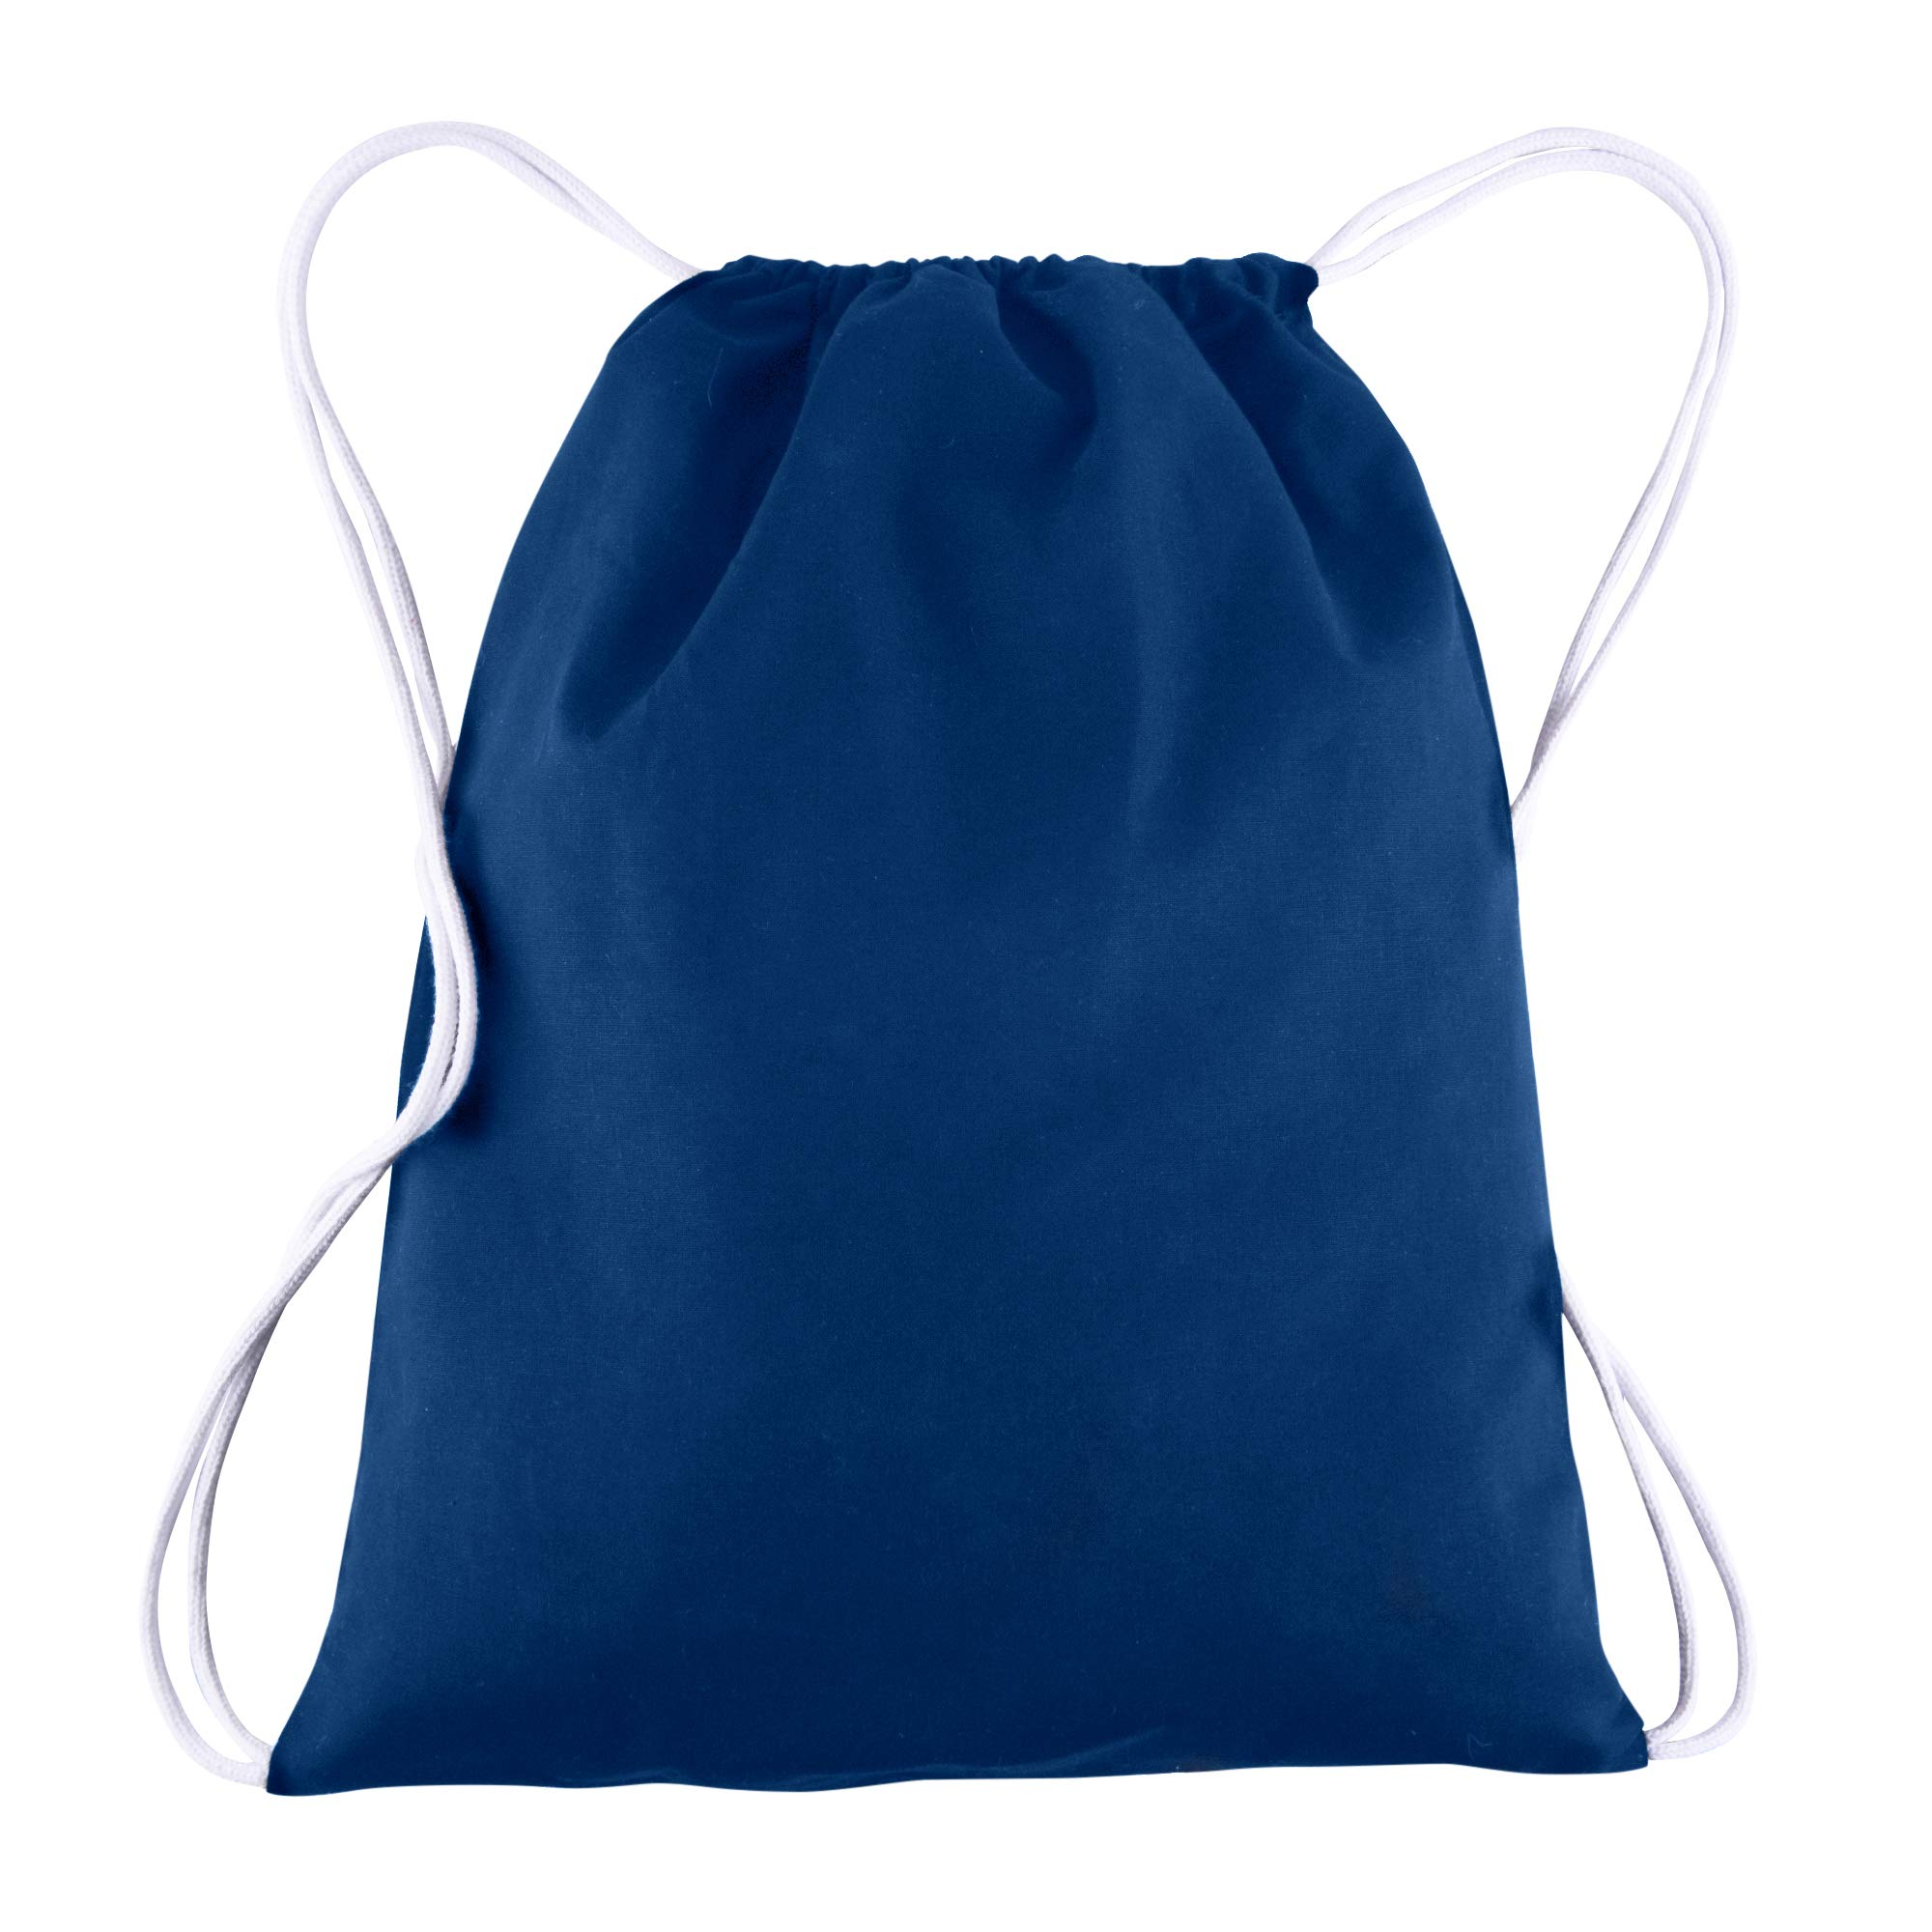 Canvas Drawstring Backpack Bulk Blank - 25 Pack - Wholesale Gym Sack Reusable and Customizable Cinch Bags 14X18 (Royal)